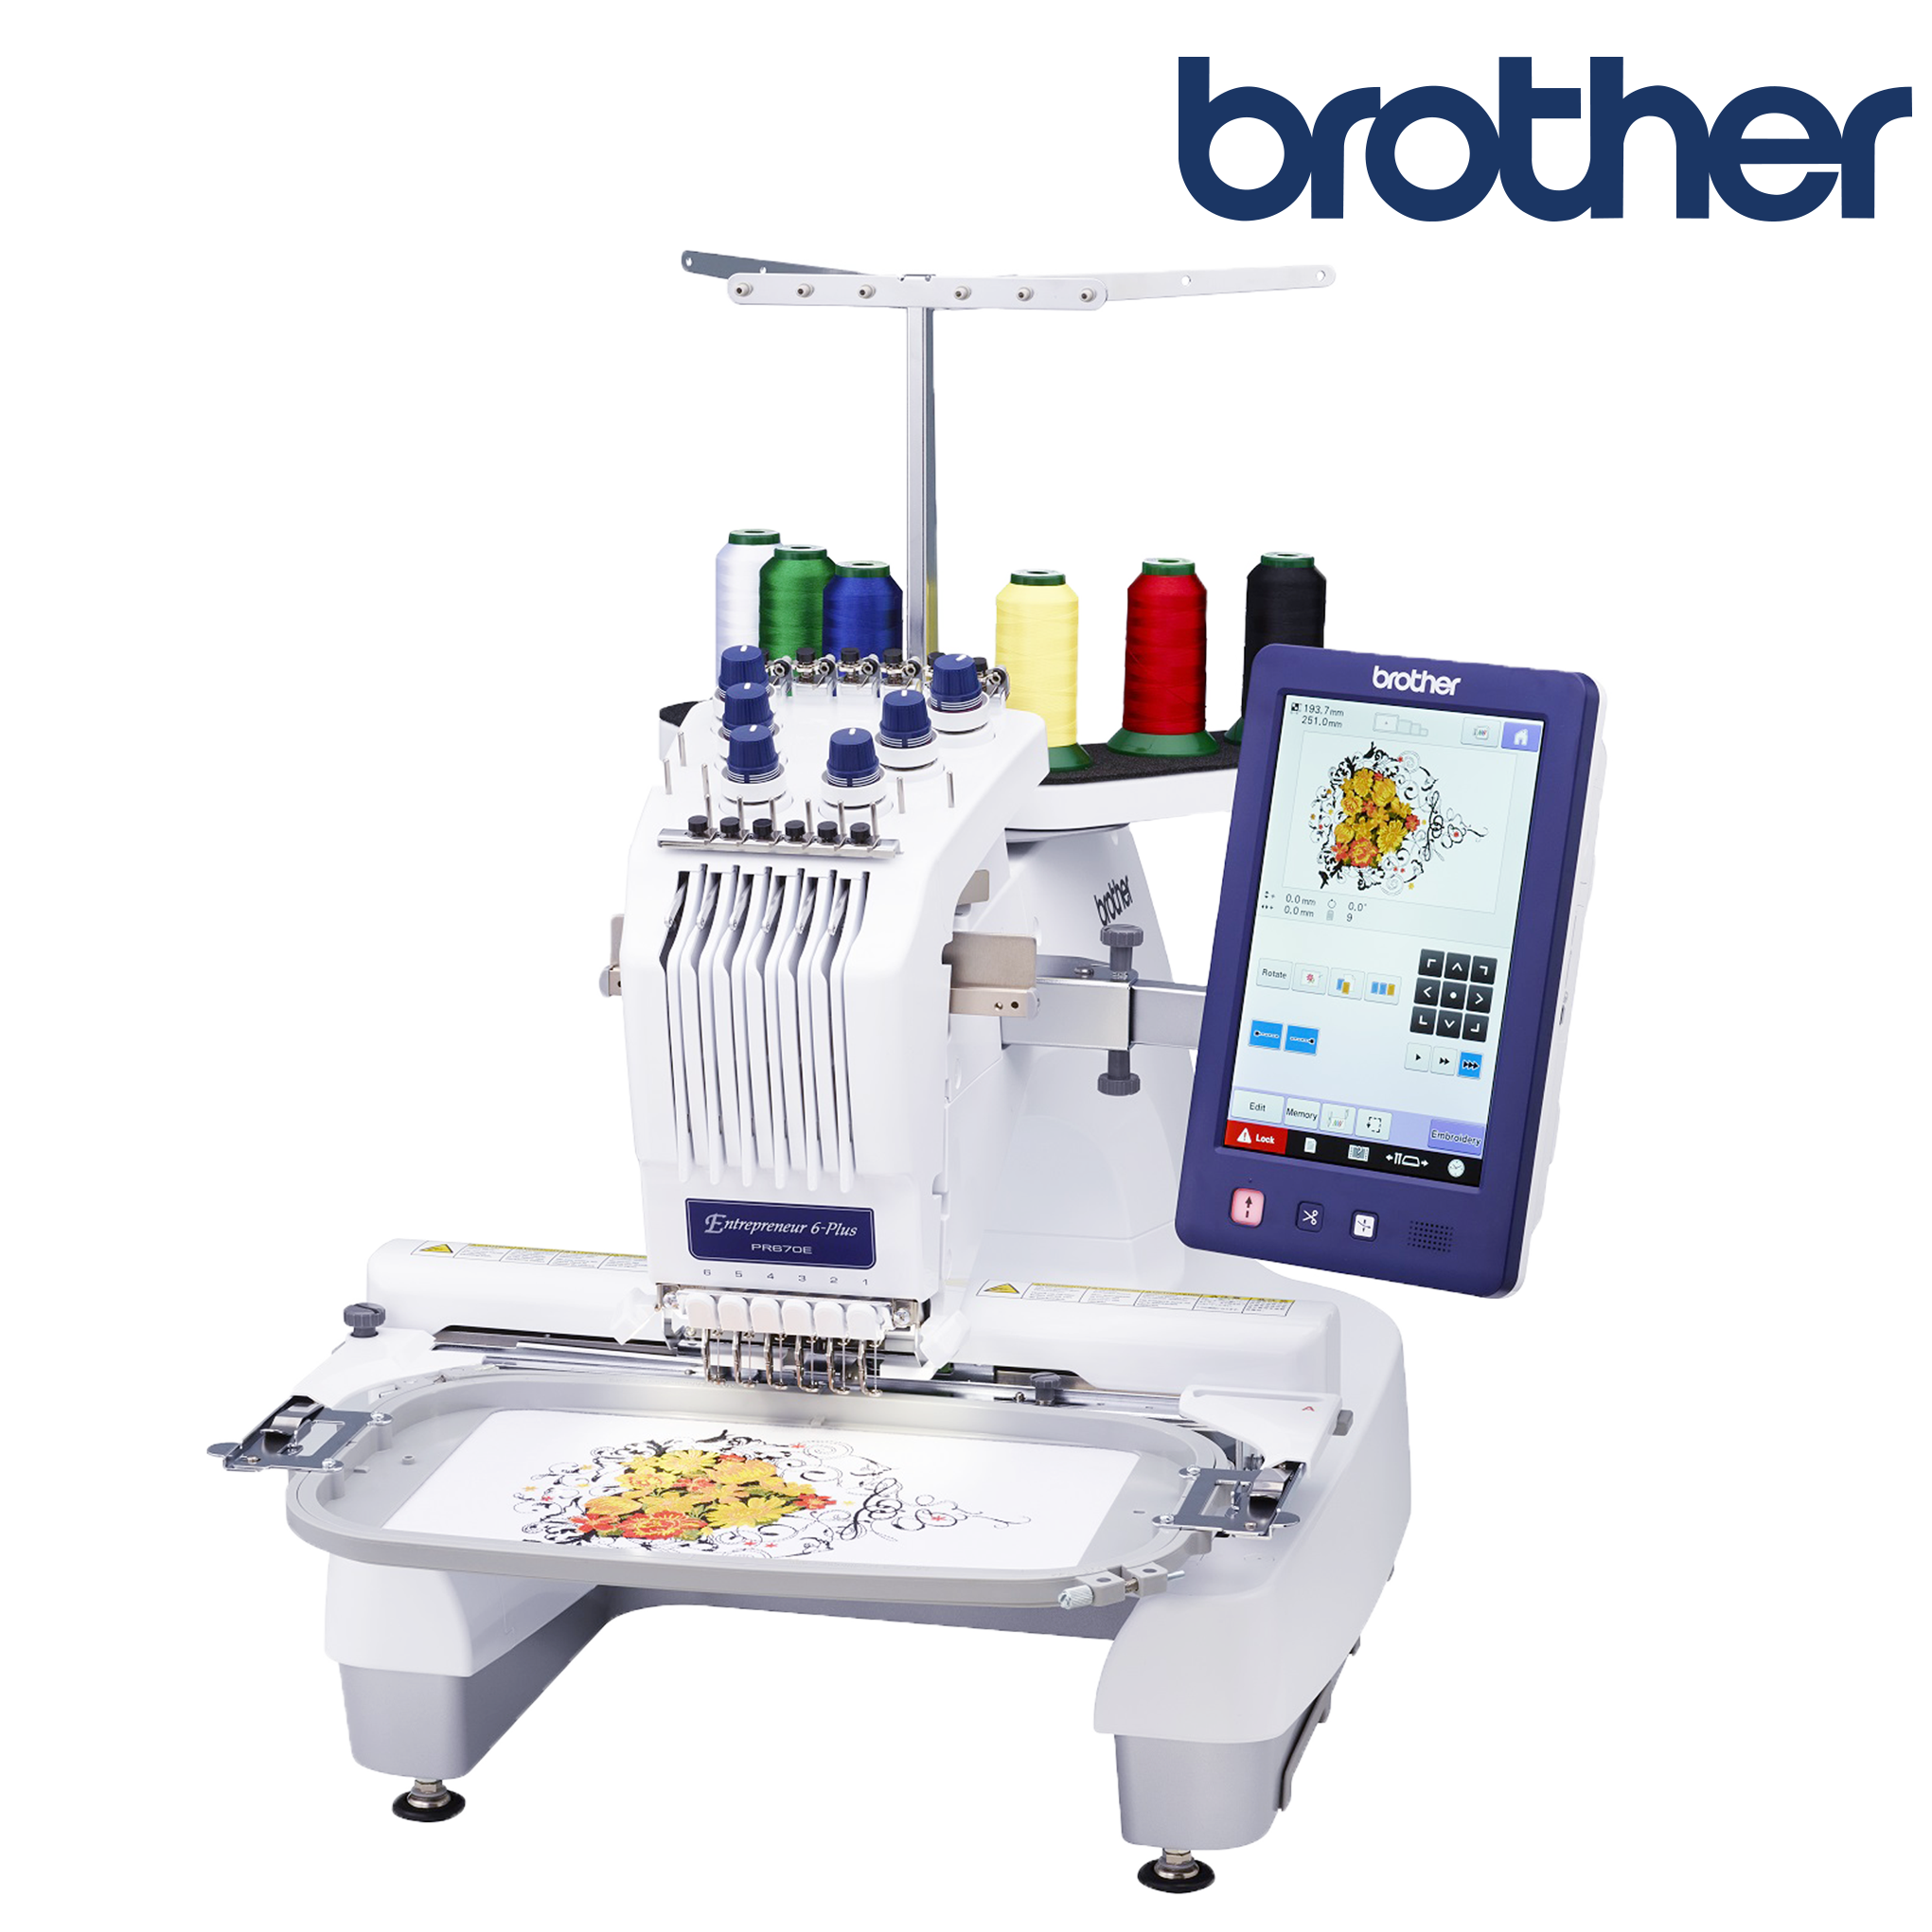 BROTHER PR670e